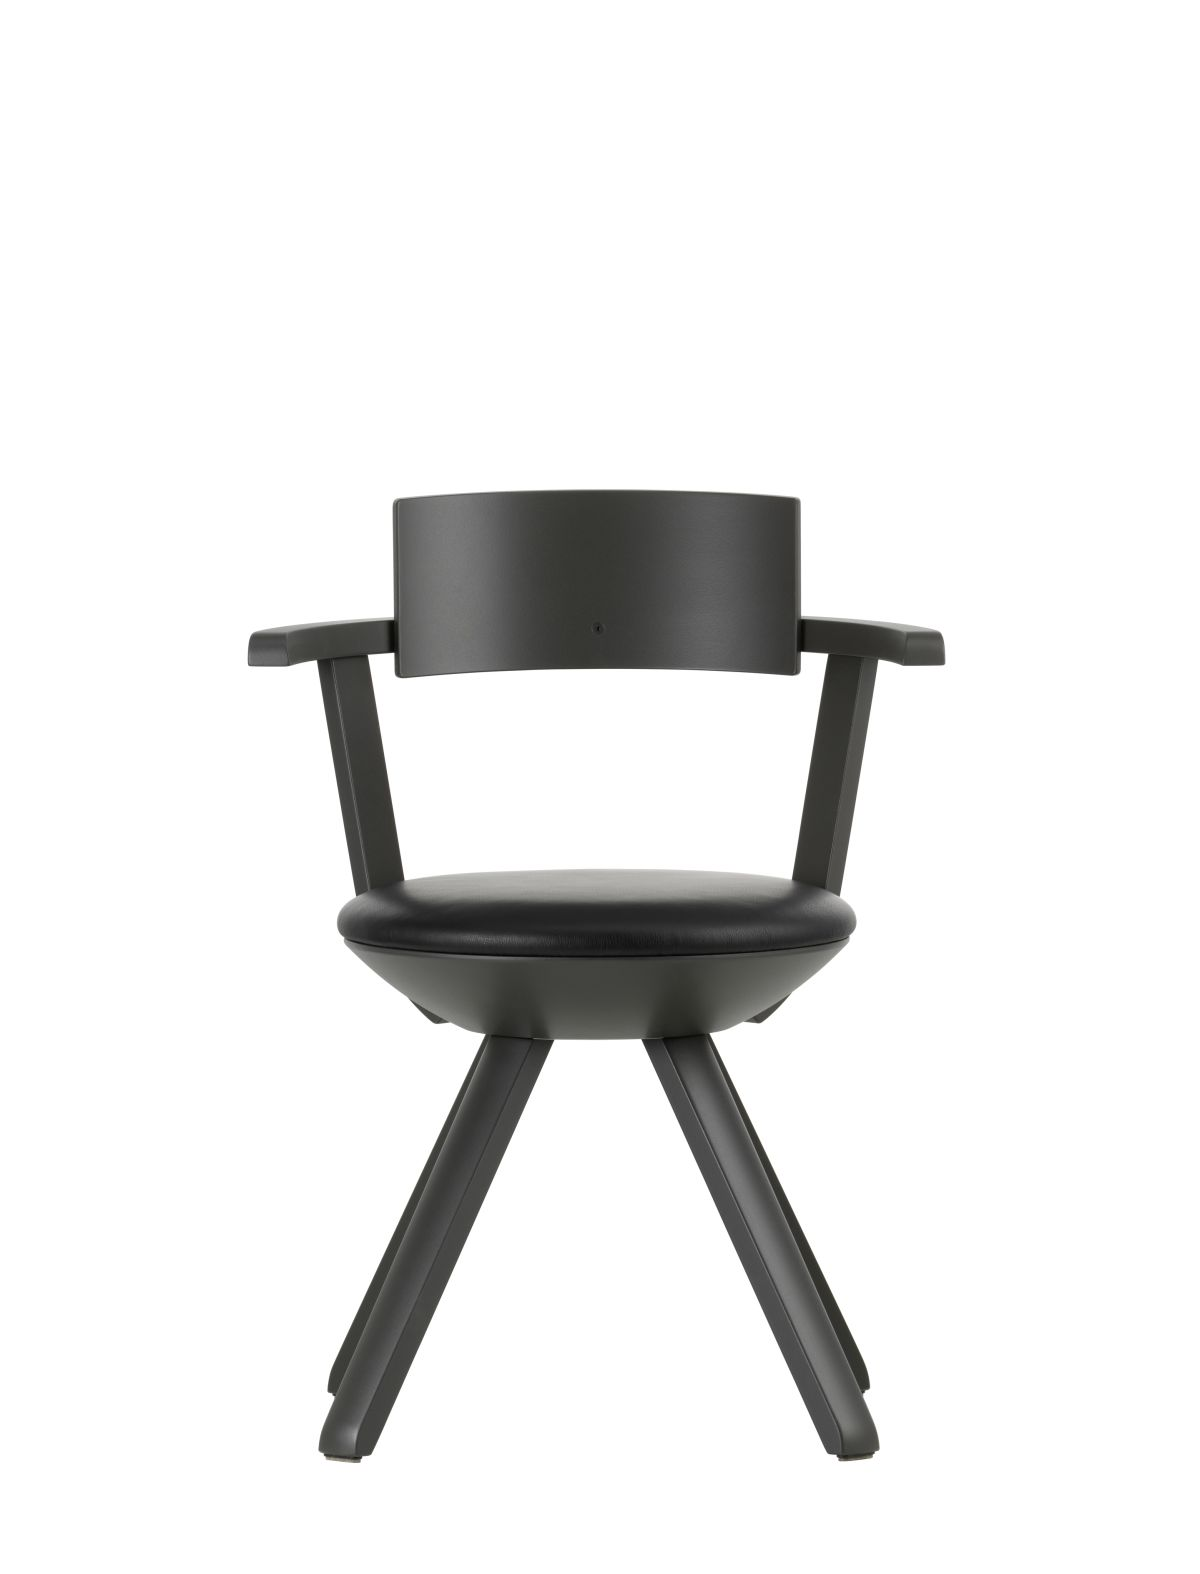 Rival Chair KG002 asphalt lacquer nero leather upholstery